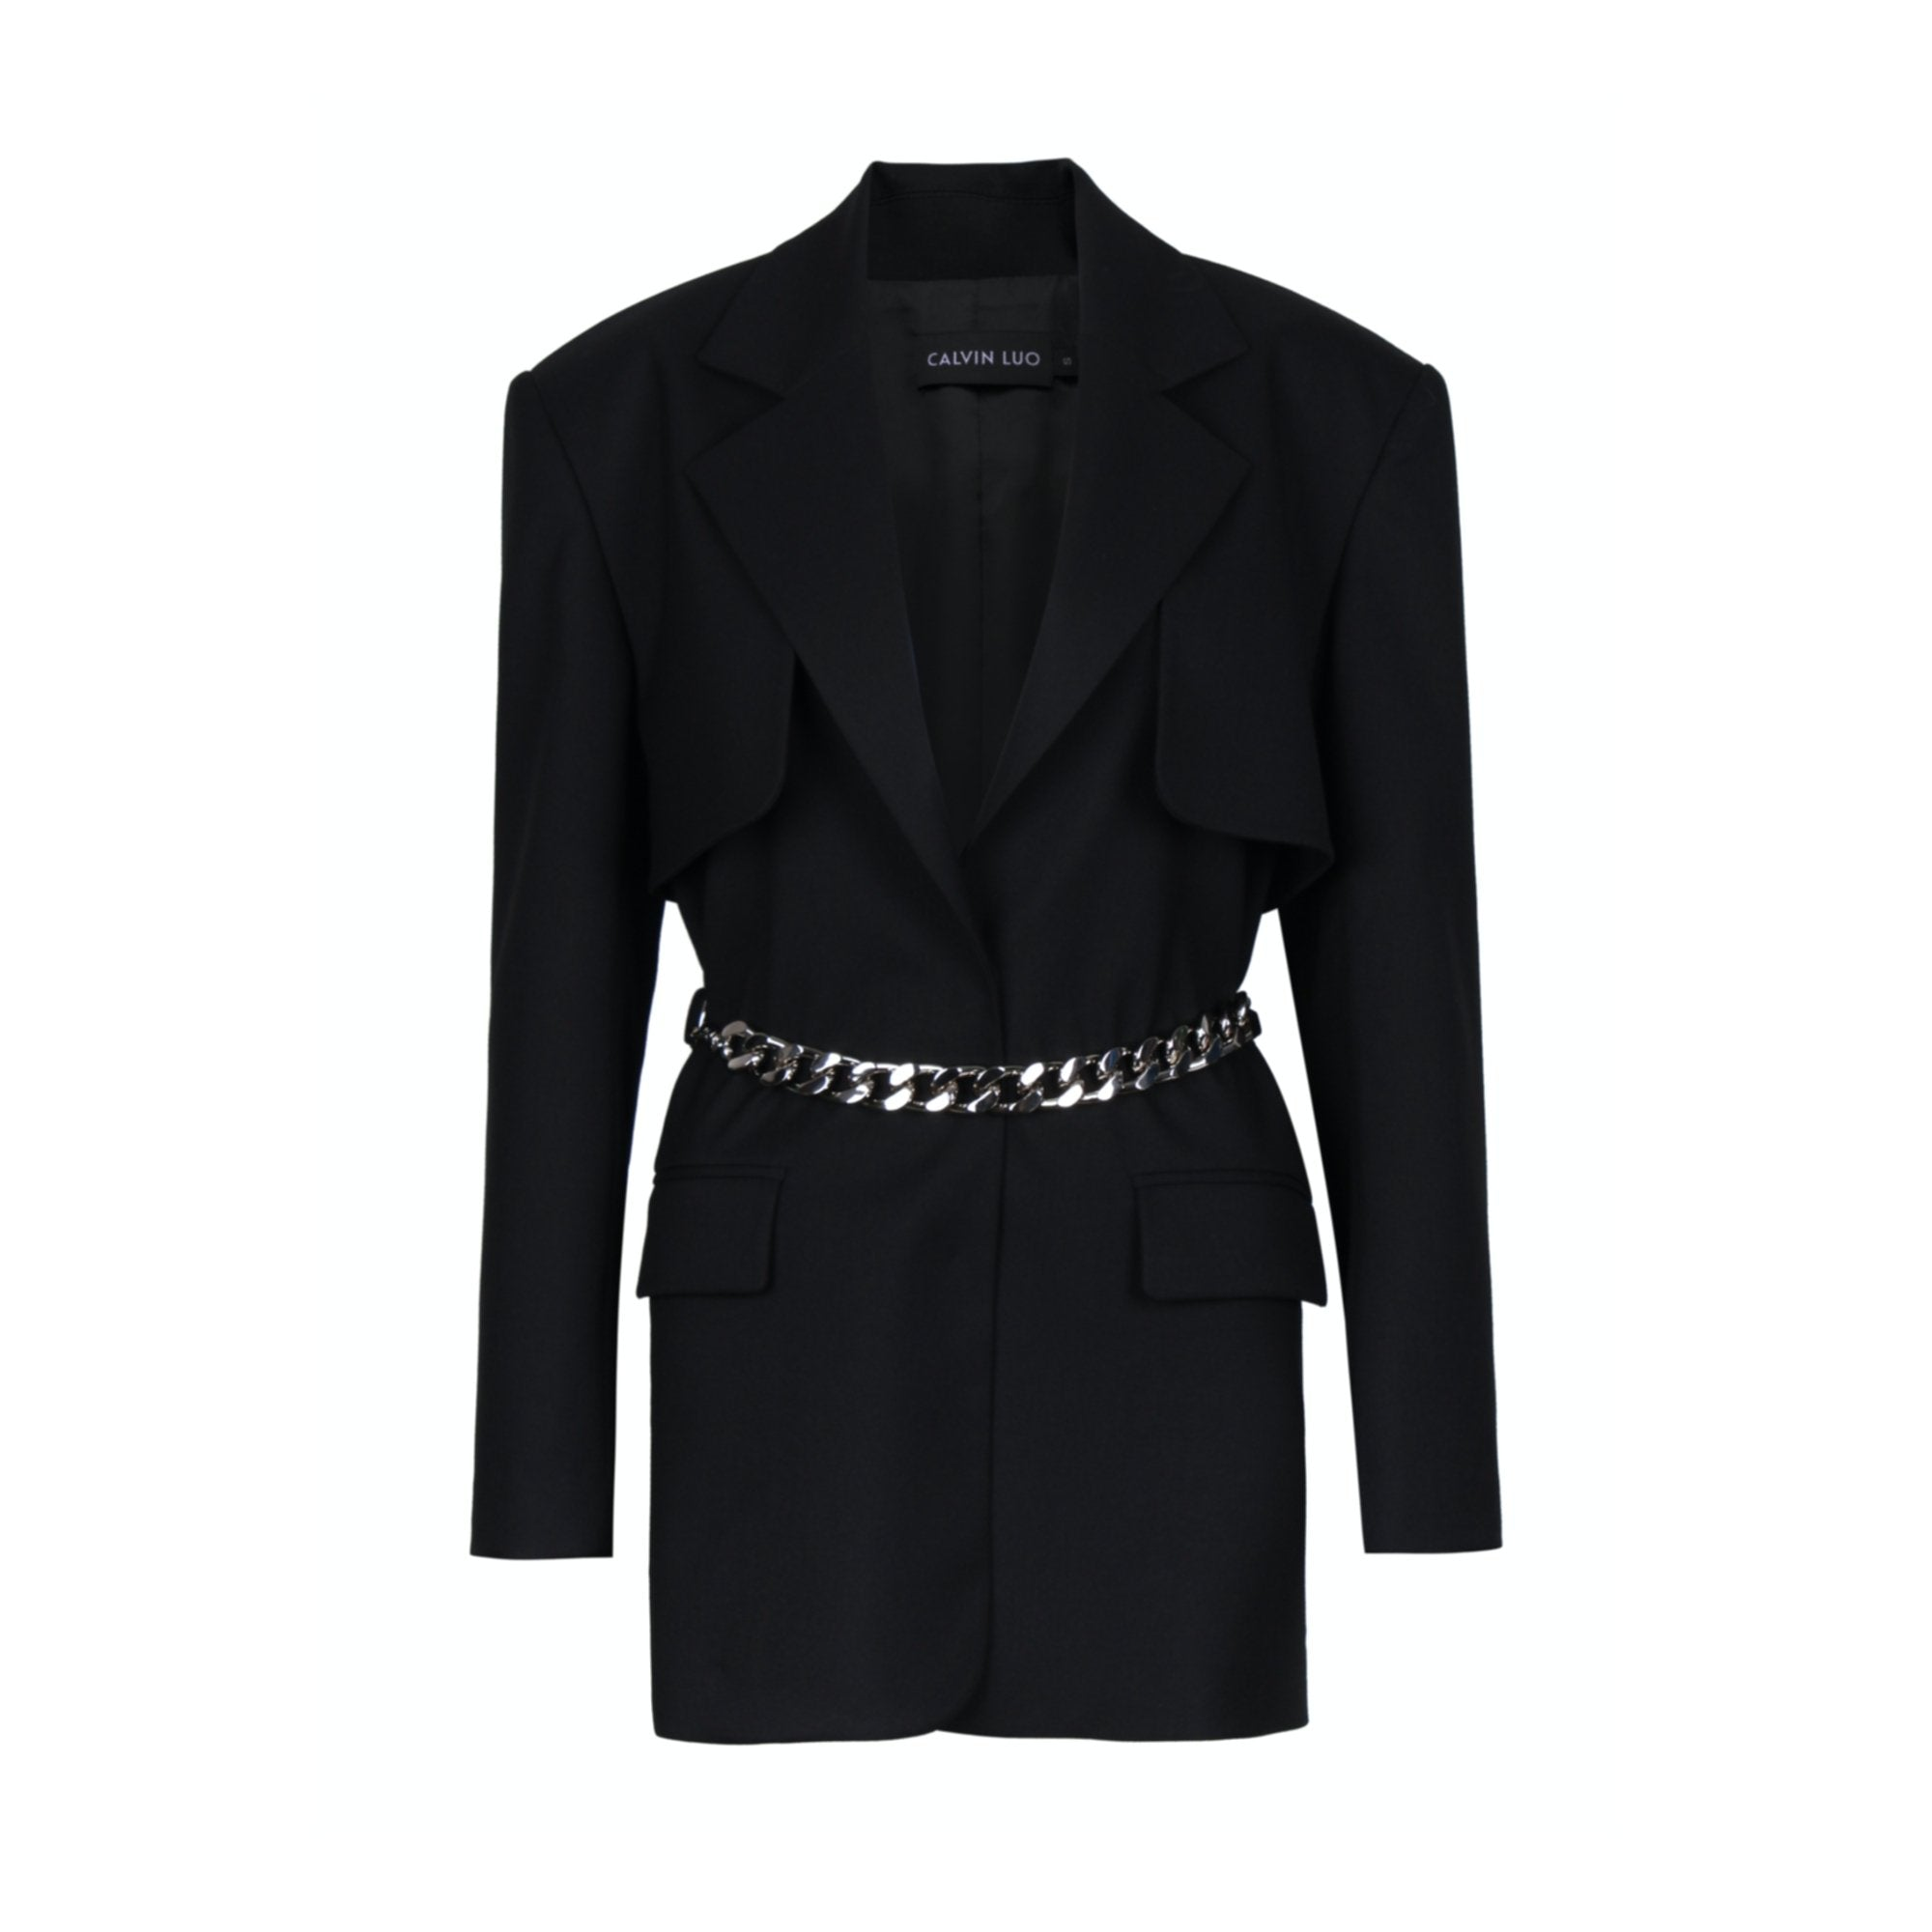 CALVIN LUO Black Waist Chain Blazer Jacket | MADA IN CHINA